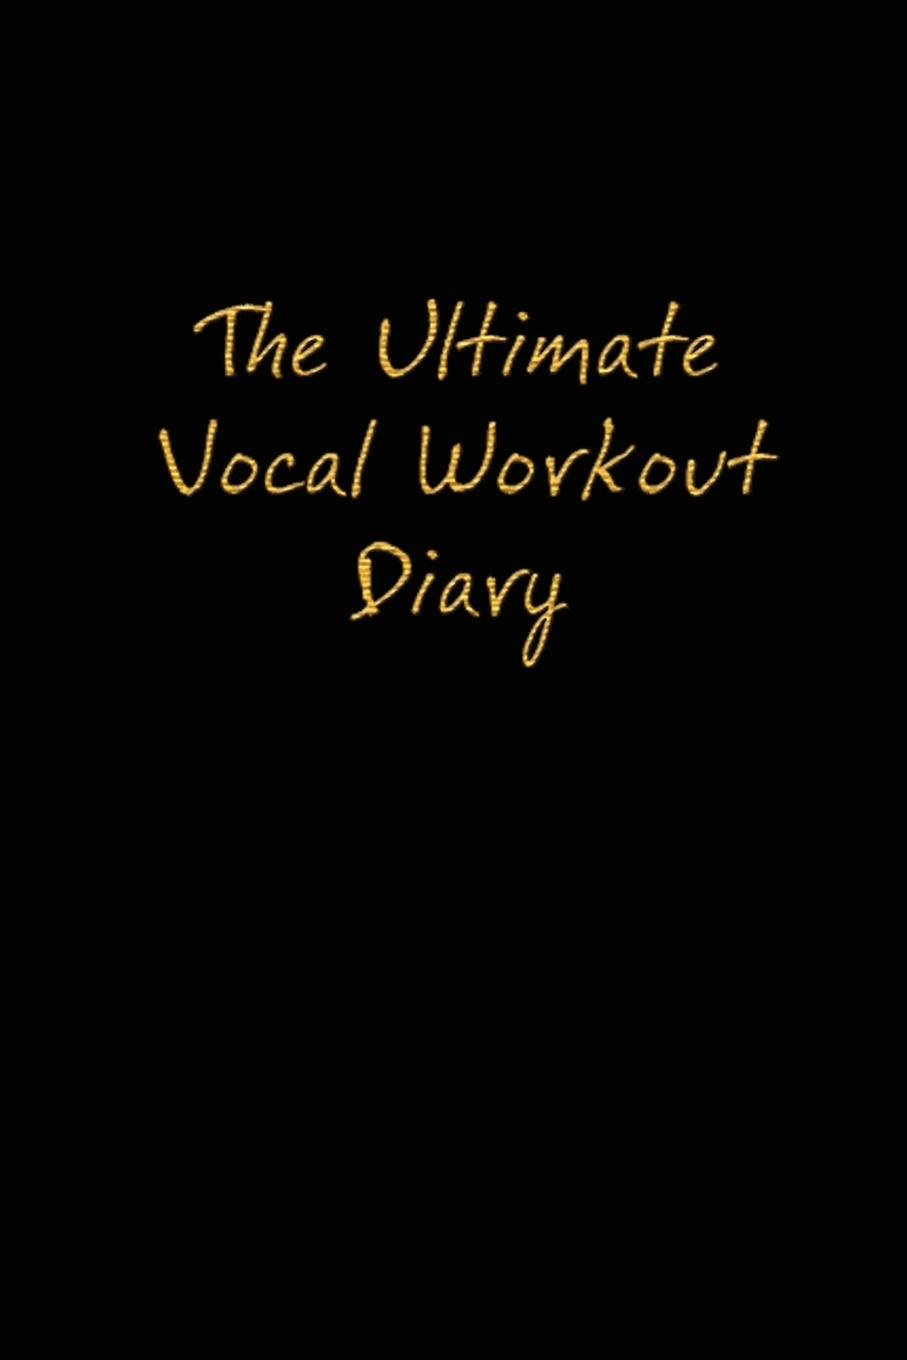 Jaime Vendera. The Ultimate Vocal Workout Diary